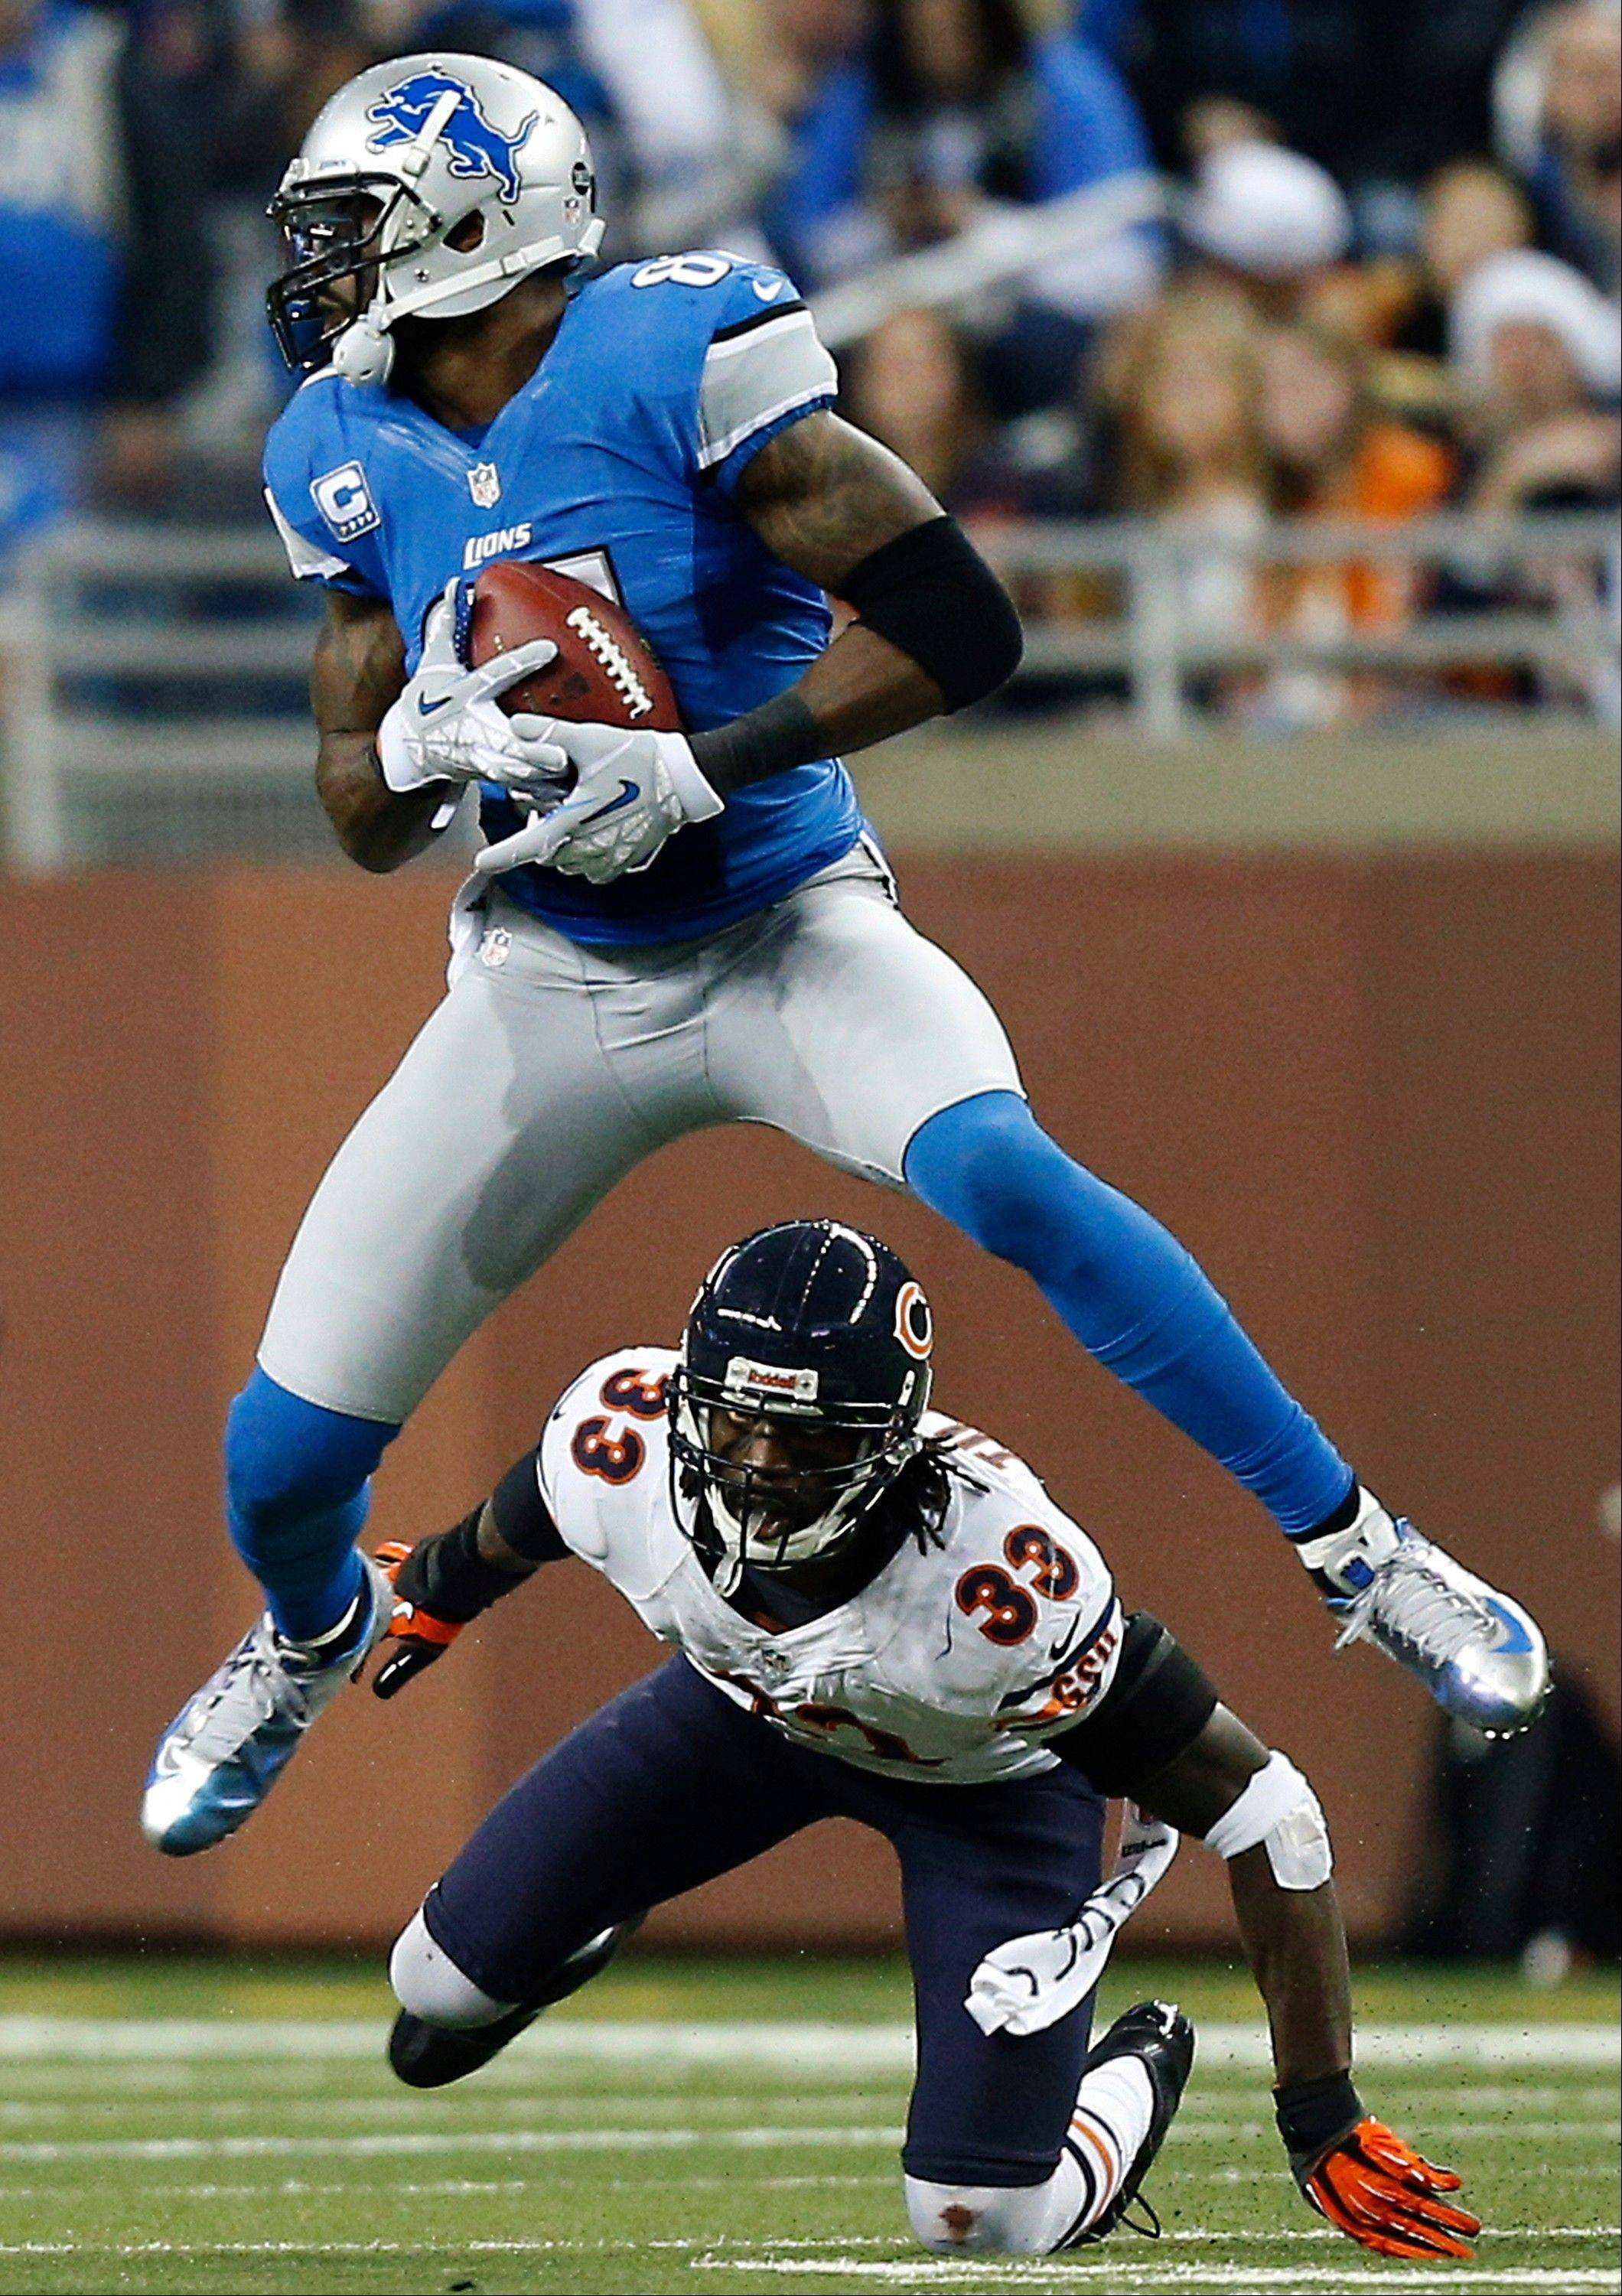 Detroit Lions wide receiver Calvin Johnson (81) gains 18-yards on a pass reception under pressure from Chicago Bears cornerback Charles Tillman (33) during the third quarter of a Dec. 30, 2012, game at Ford Field in Detroit.